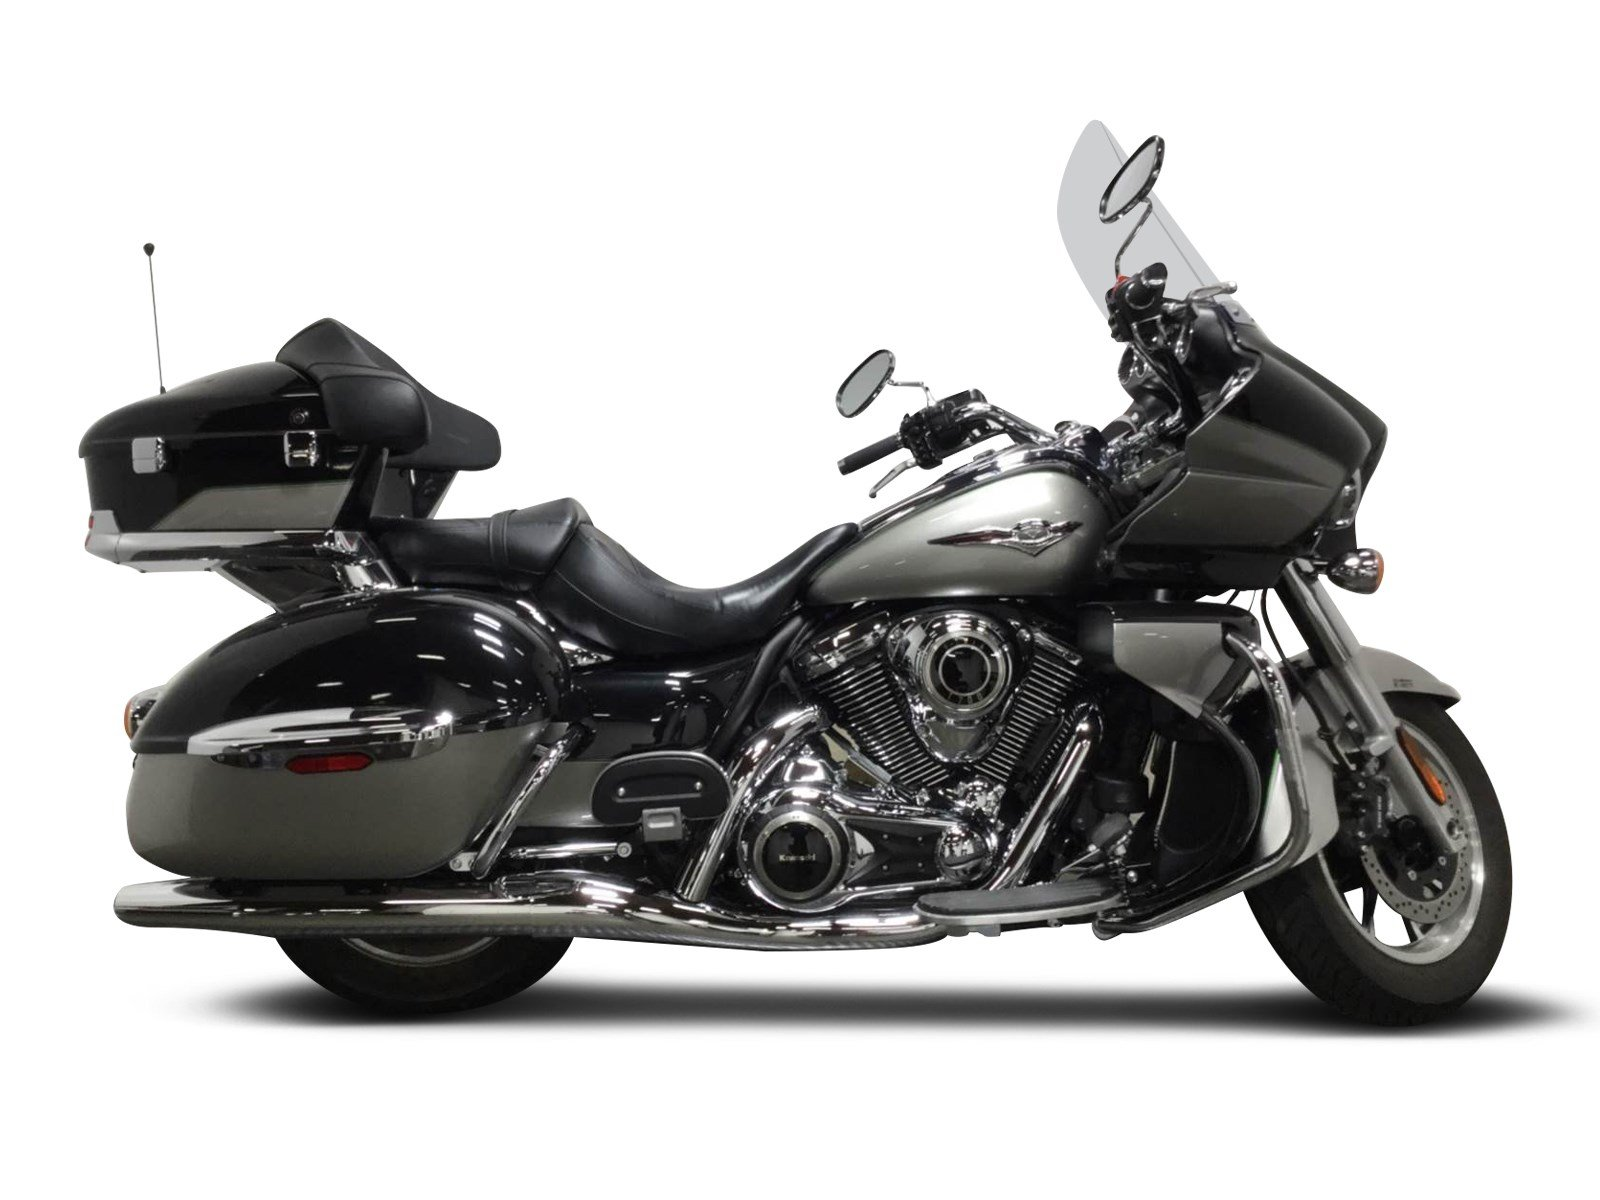 2009 KAWASAKI VN1700C9F/A VULCAN NOMAD For Sale